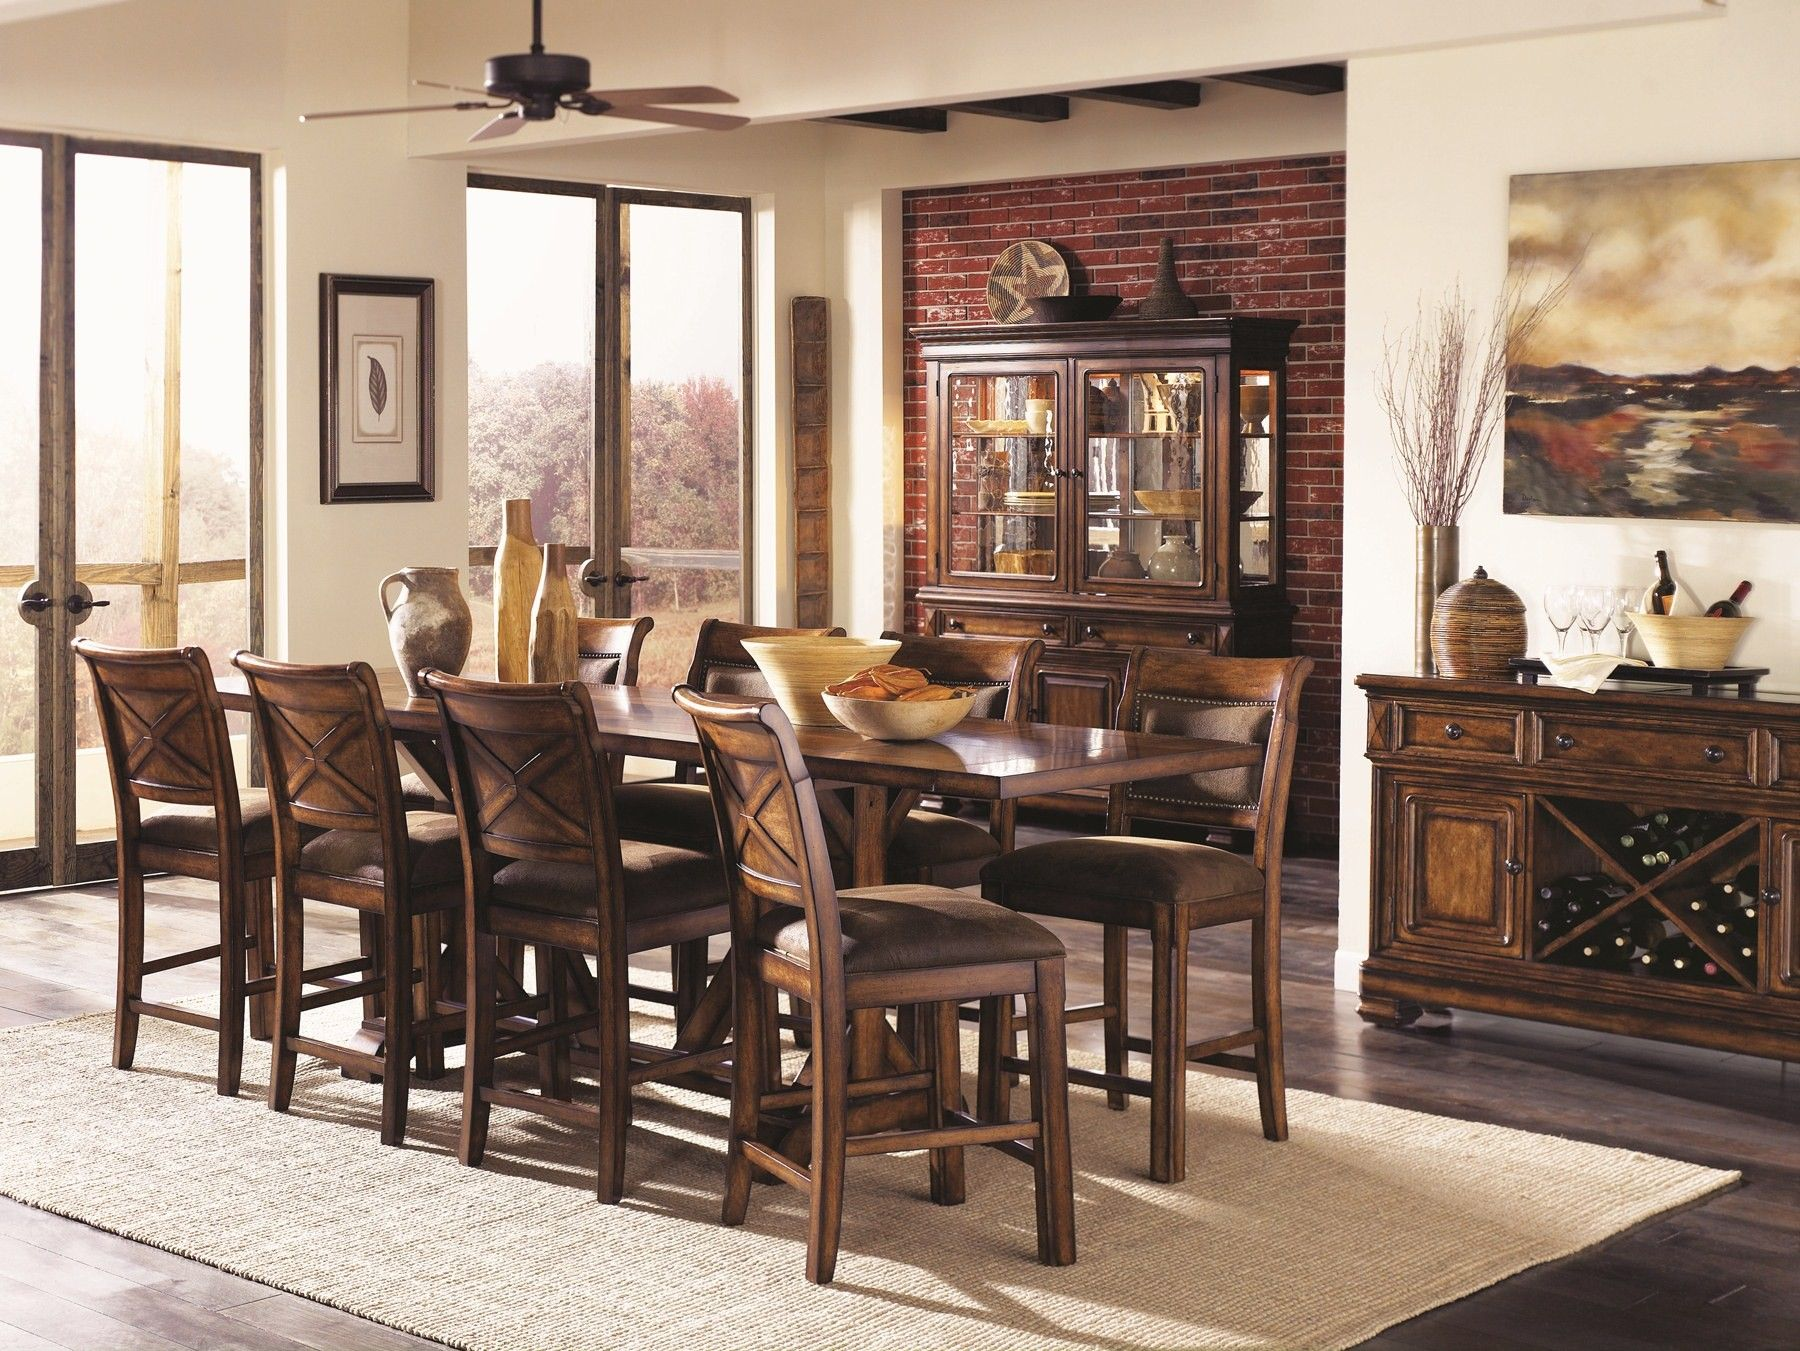 Larkspur Rectangular Counter Height Dining Room Set  Things I New Height Dining Room Table Design Inspiration